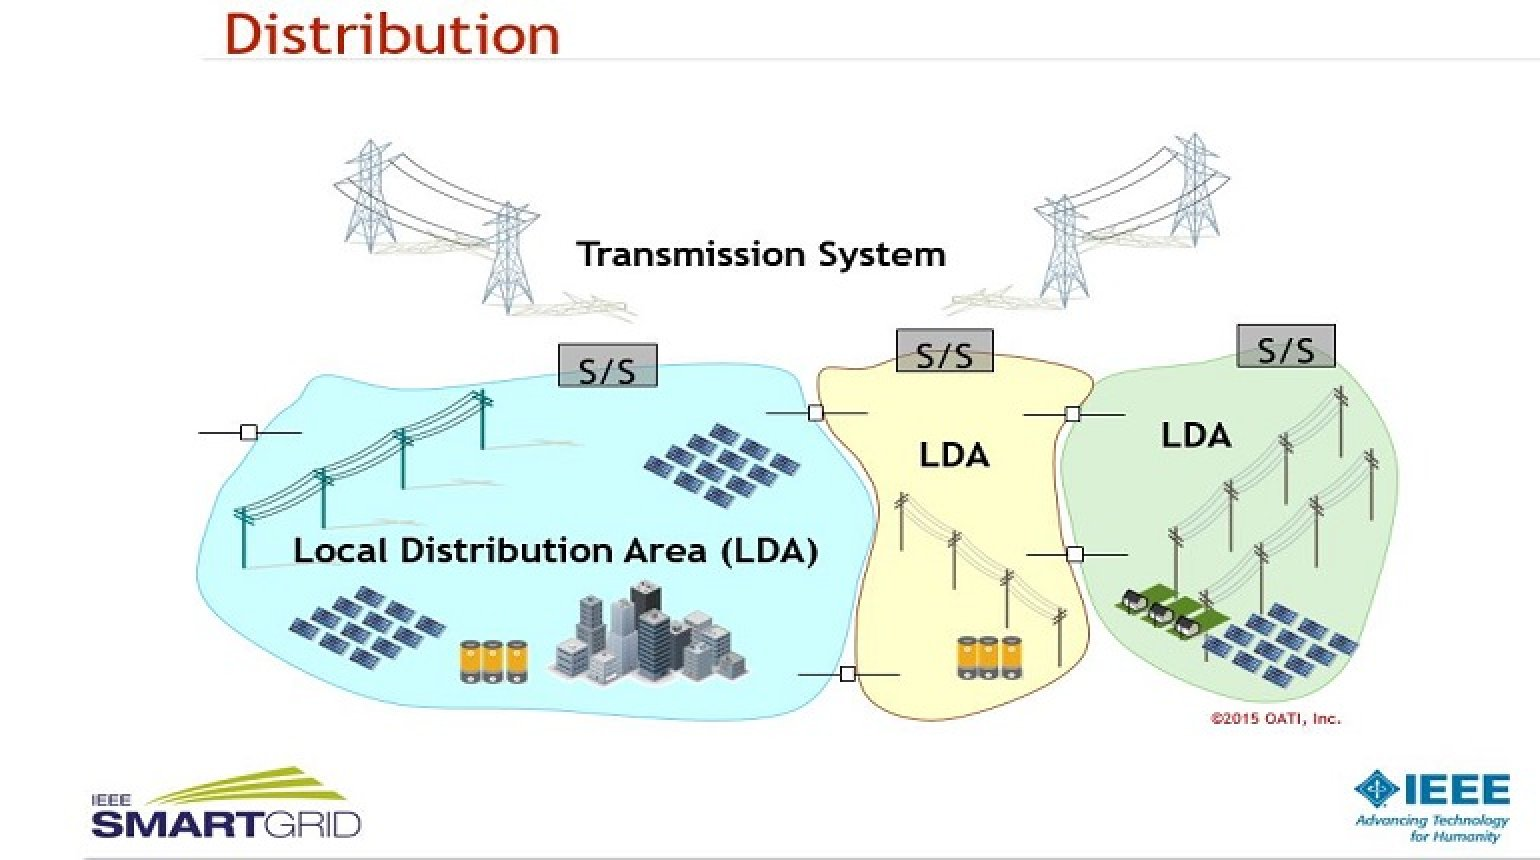 Distributed Energy Resources and Grid Modernization presented by Ali Ipakchi